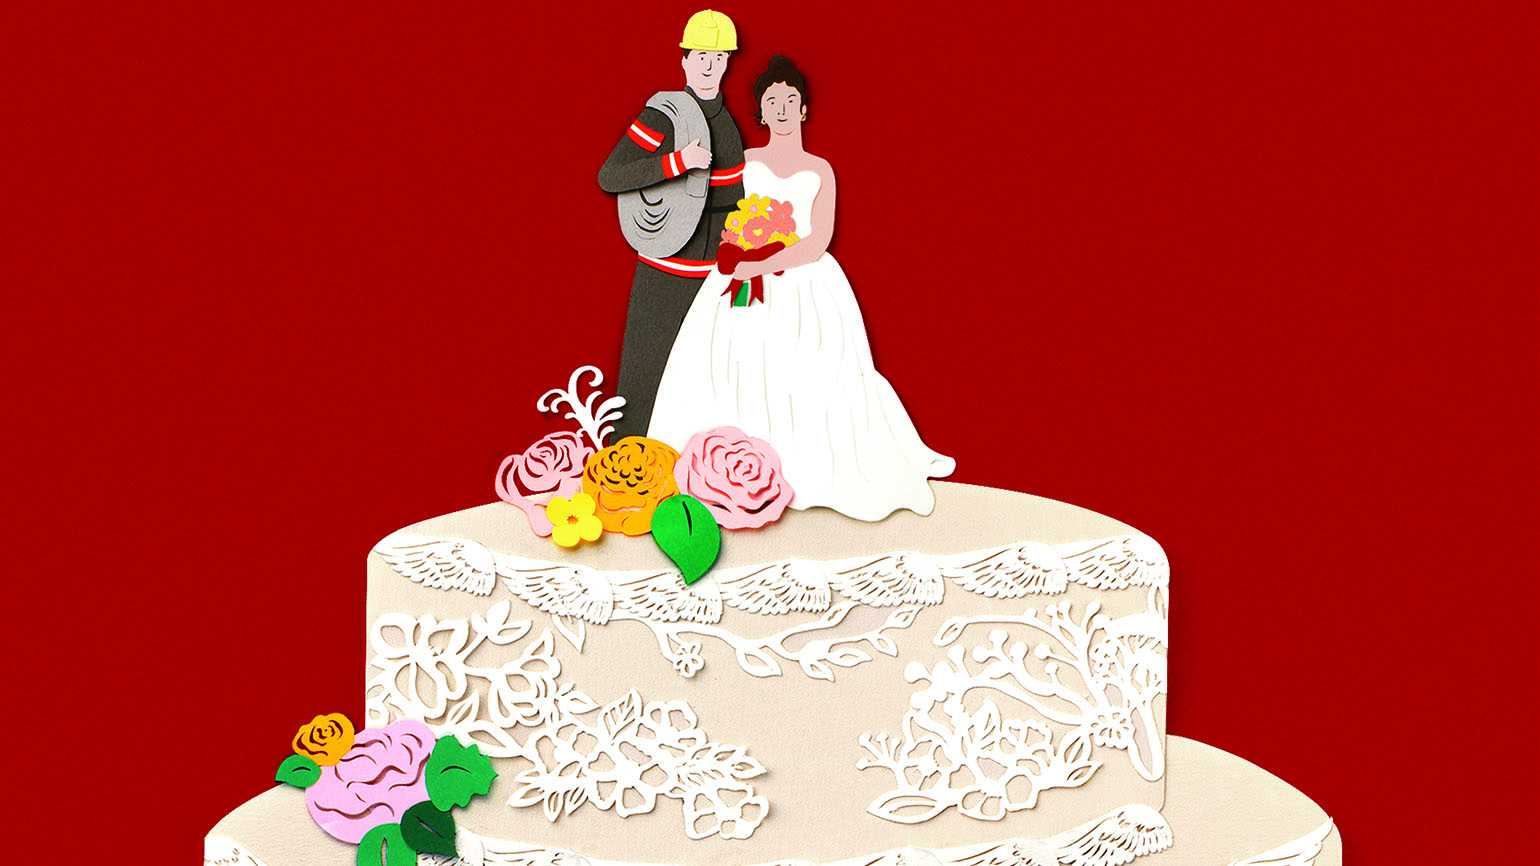 An illustration of a wedding cake topper